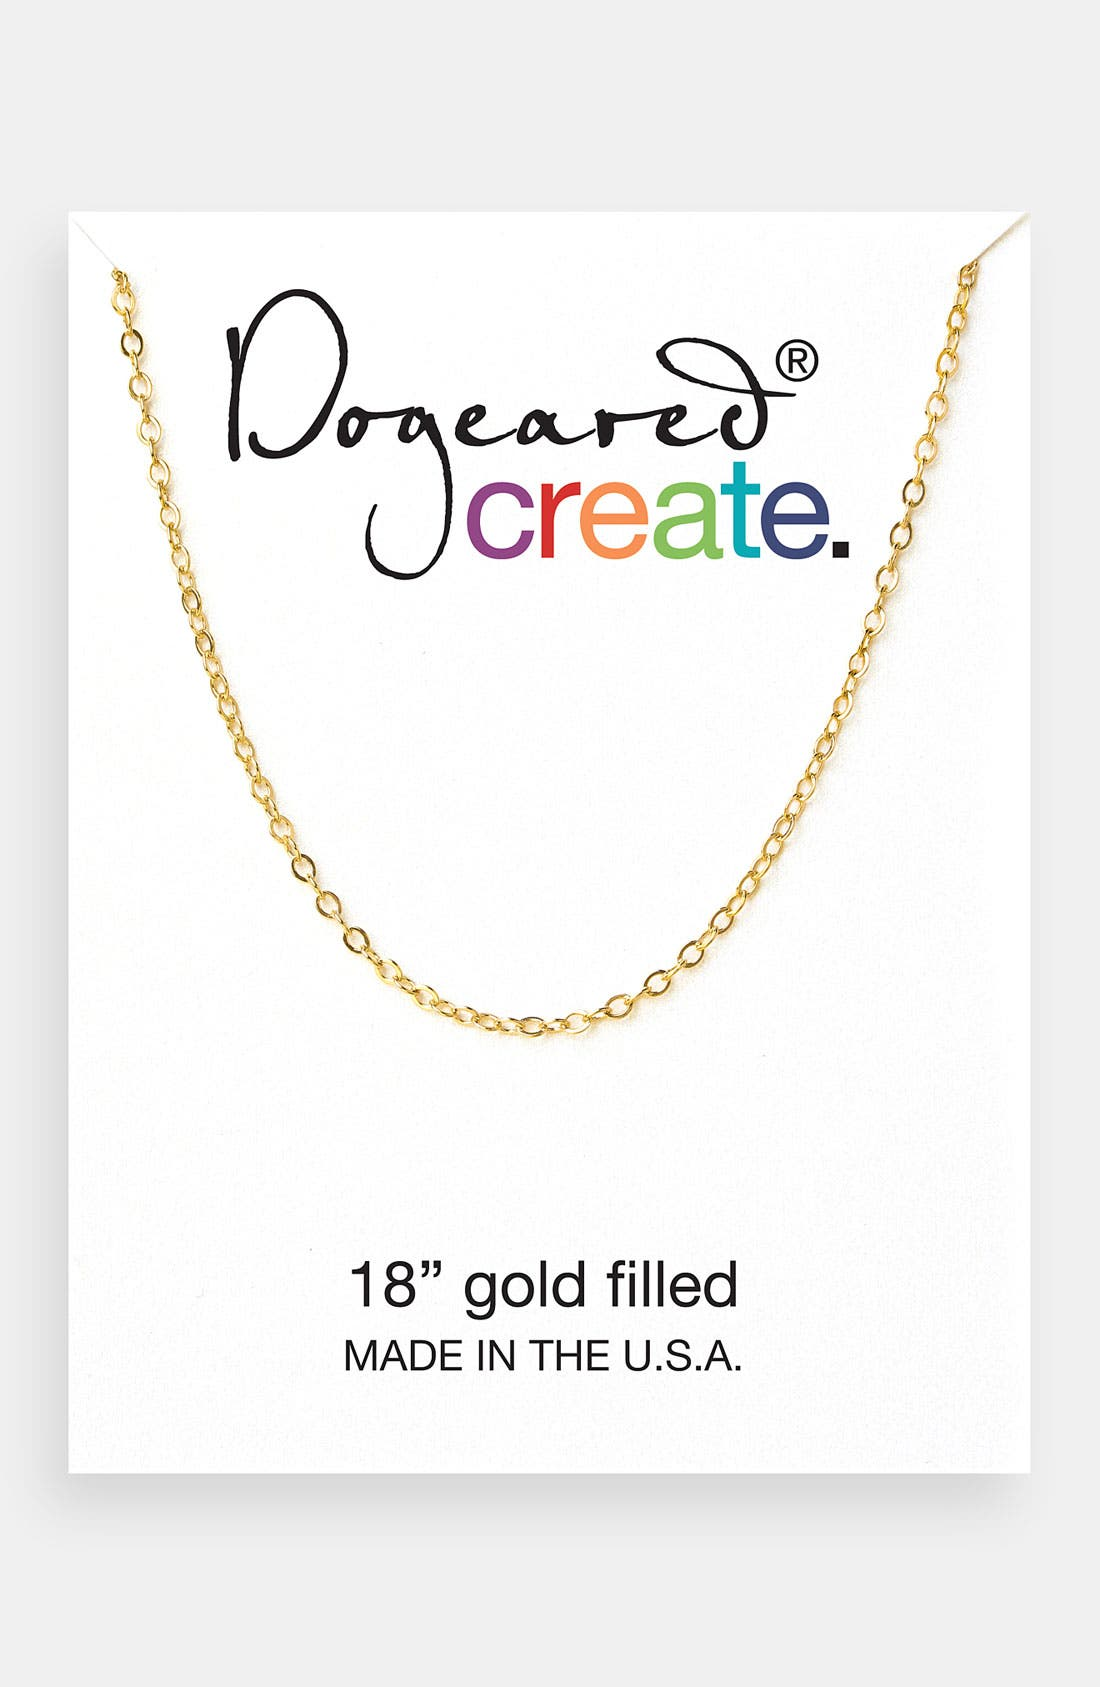 Main Image - Dogeared 'Create' Link Necklace